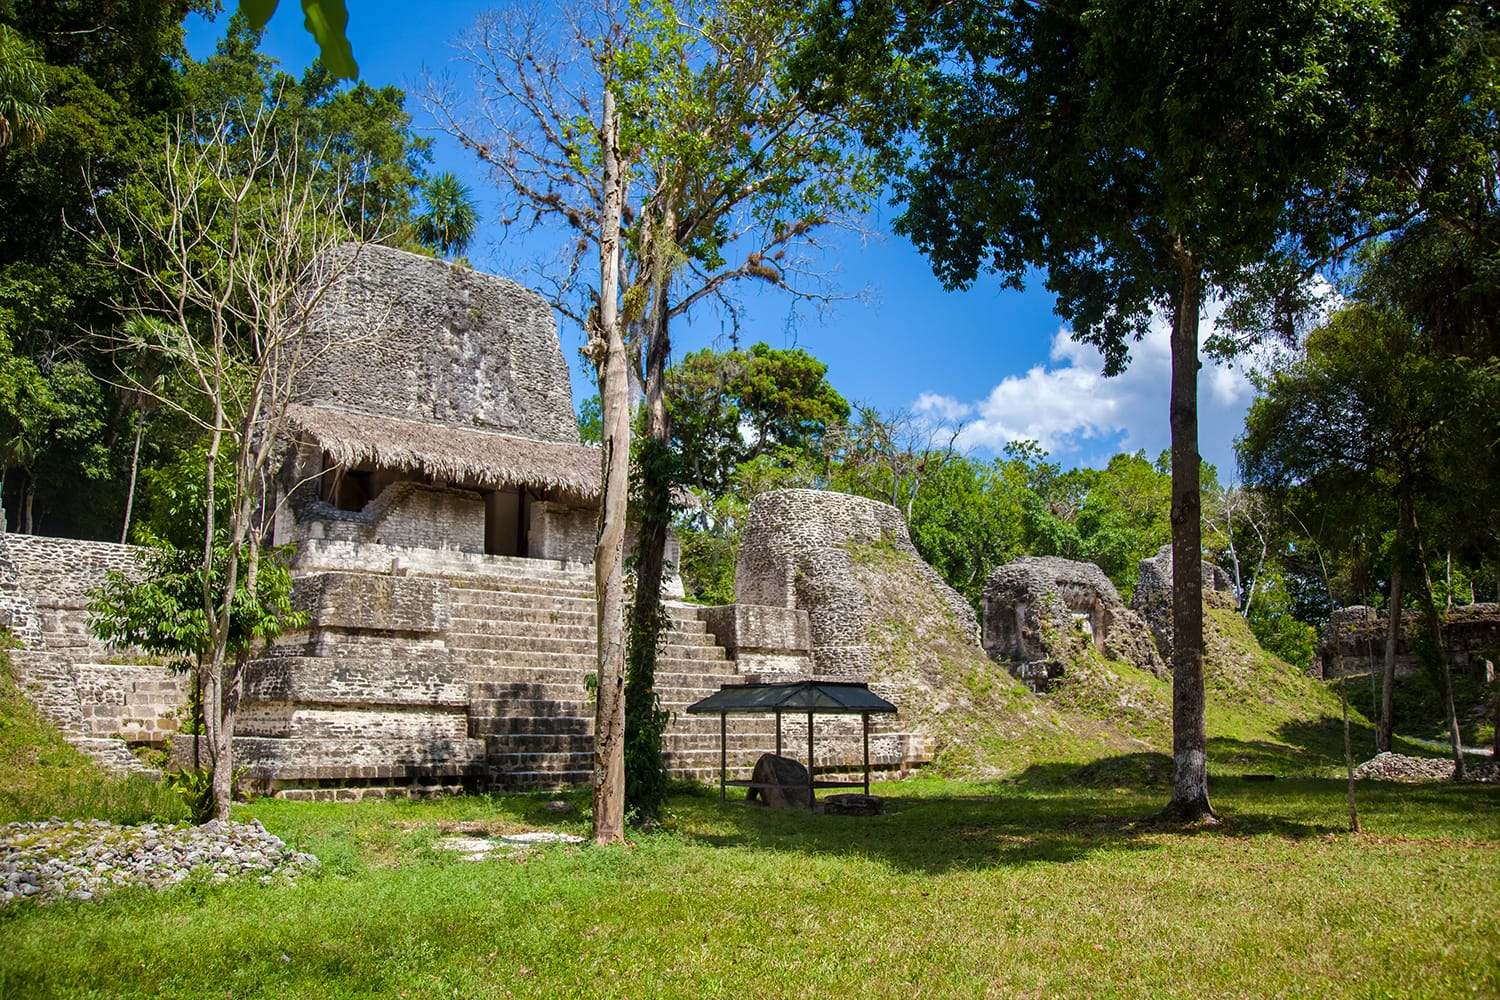 Structure 5D-96, the largest of the temples on the Plaza of The Seven temples, Tikal Peten, Guatemala